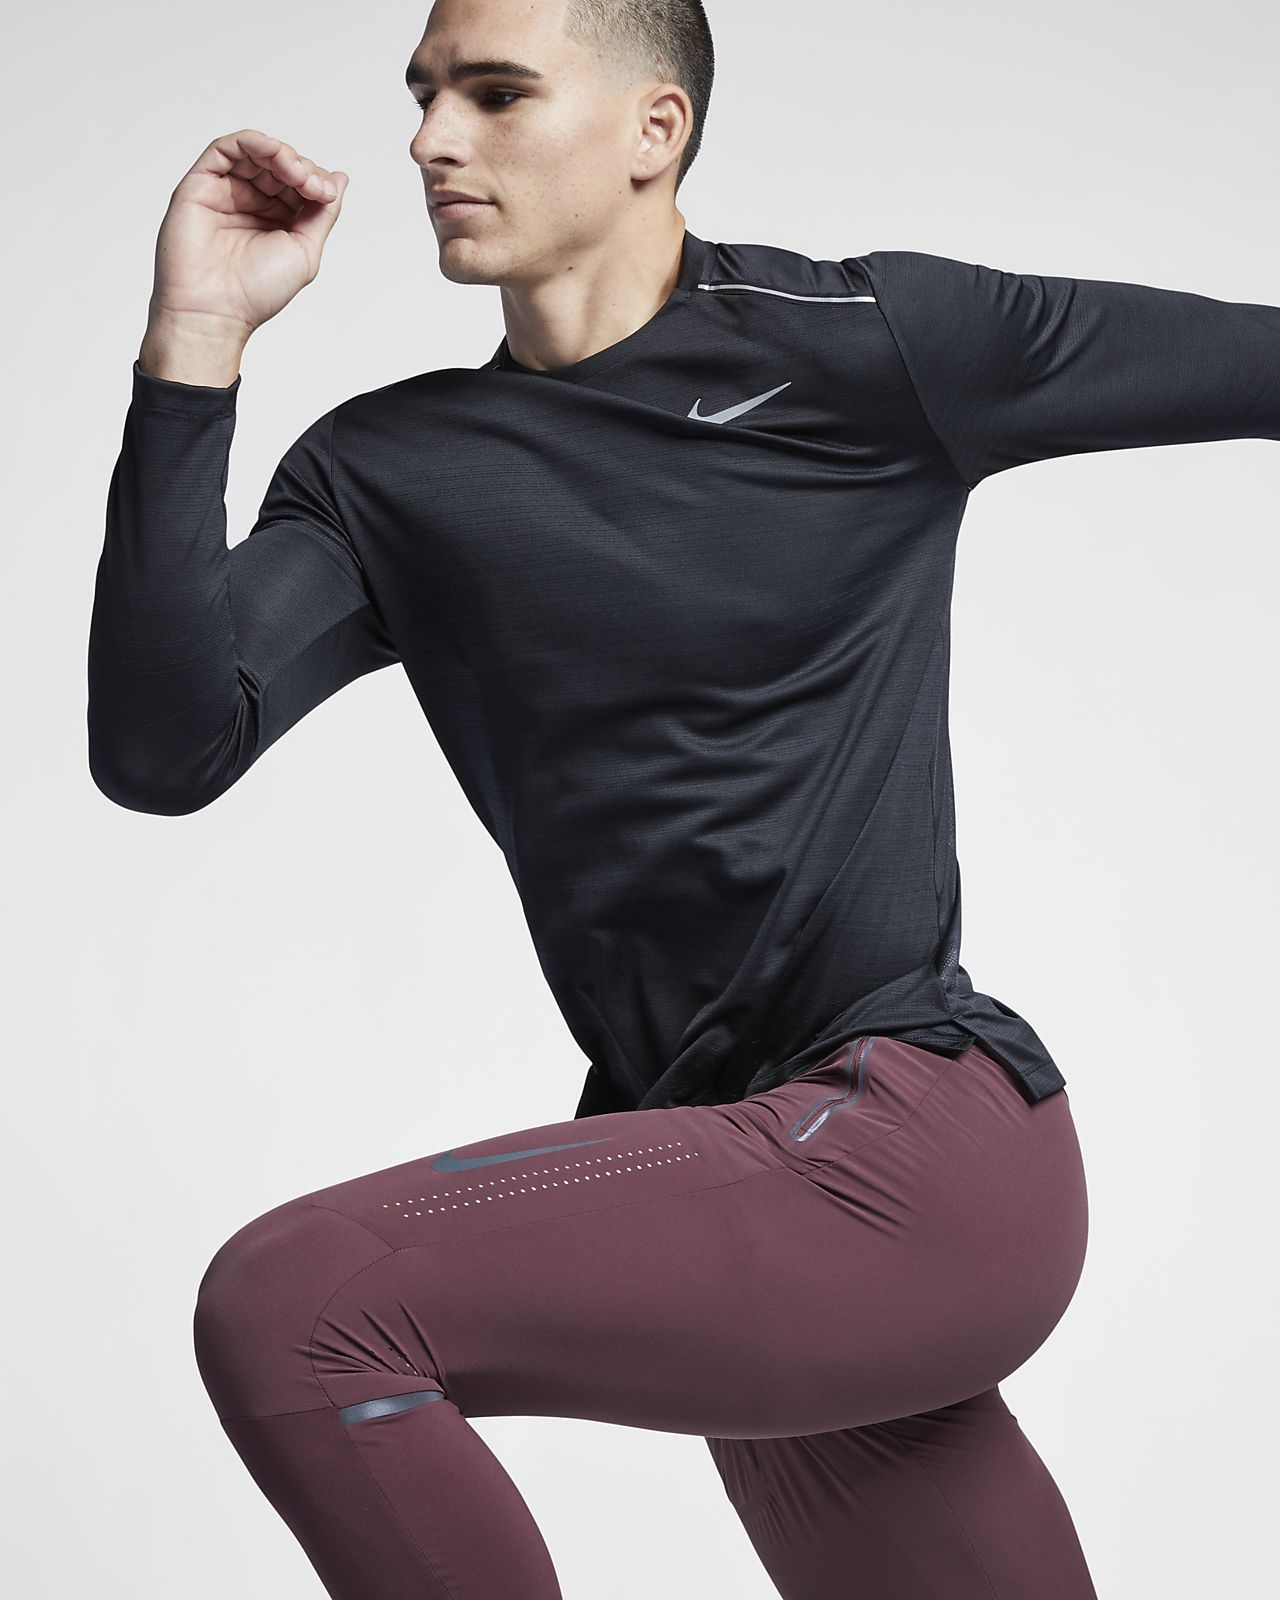 c25ec8f391b3 Nike Dri-FIT Miler Men s Long-Sleeve Running Top. Nike.com